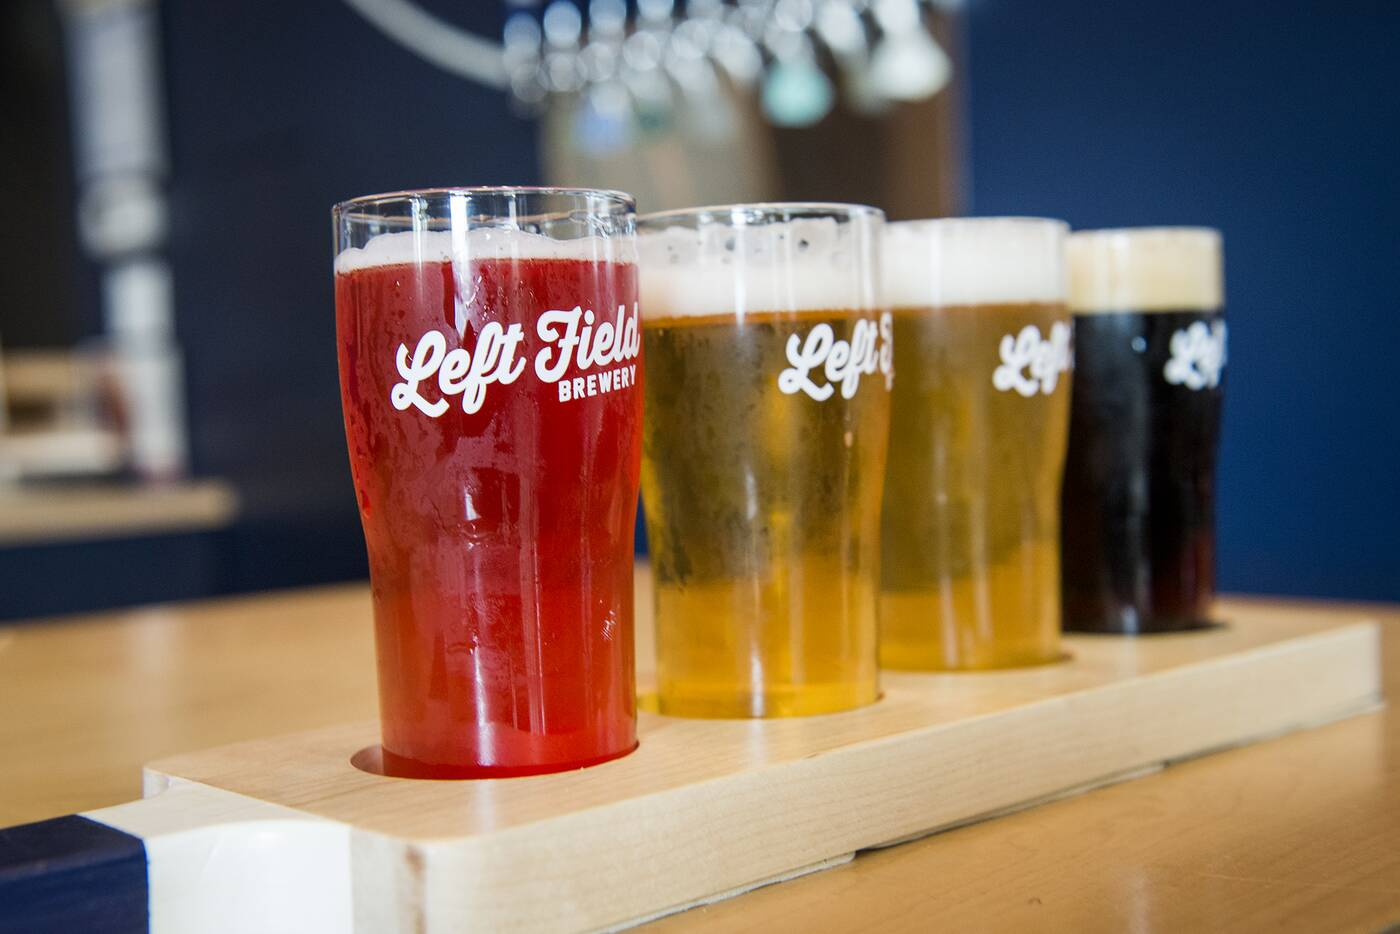 Left Field Brewery Toronto